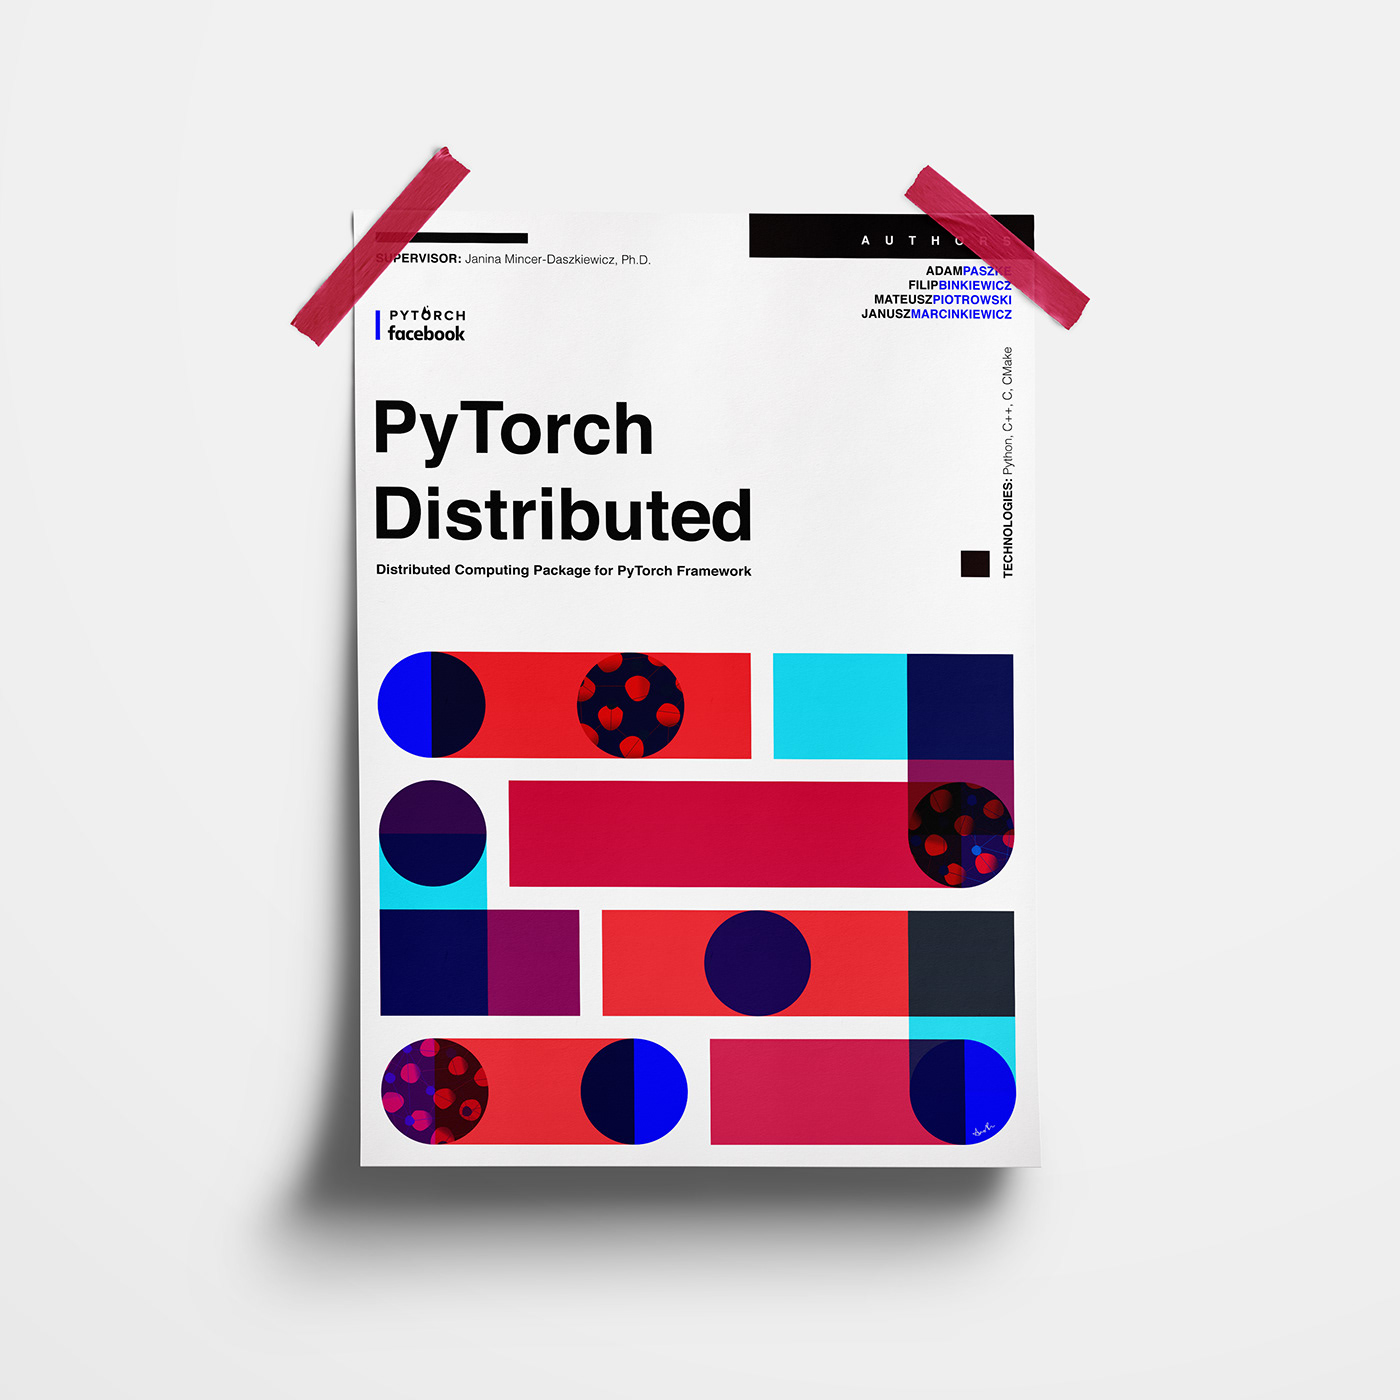 PyTorch Distributed | poster & animation on Behance